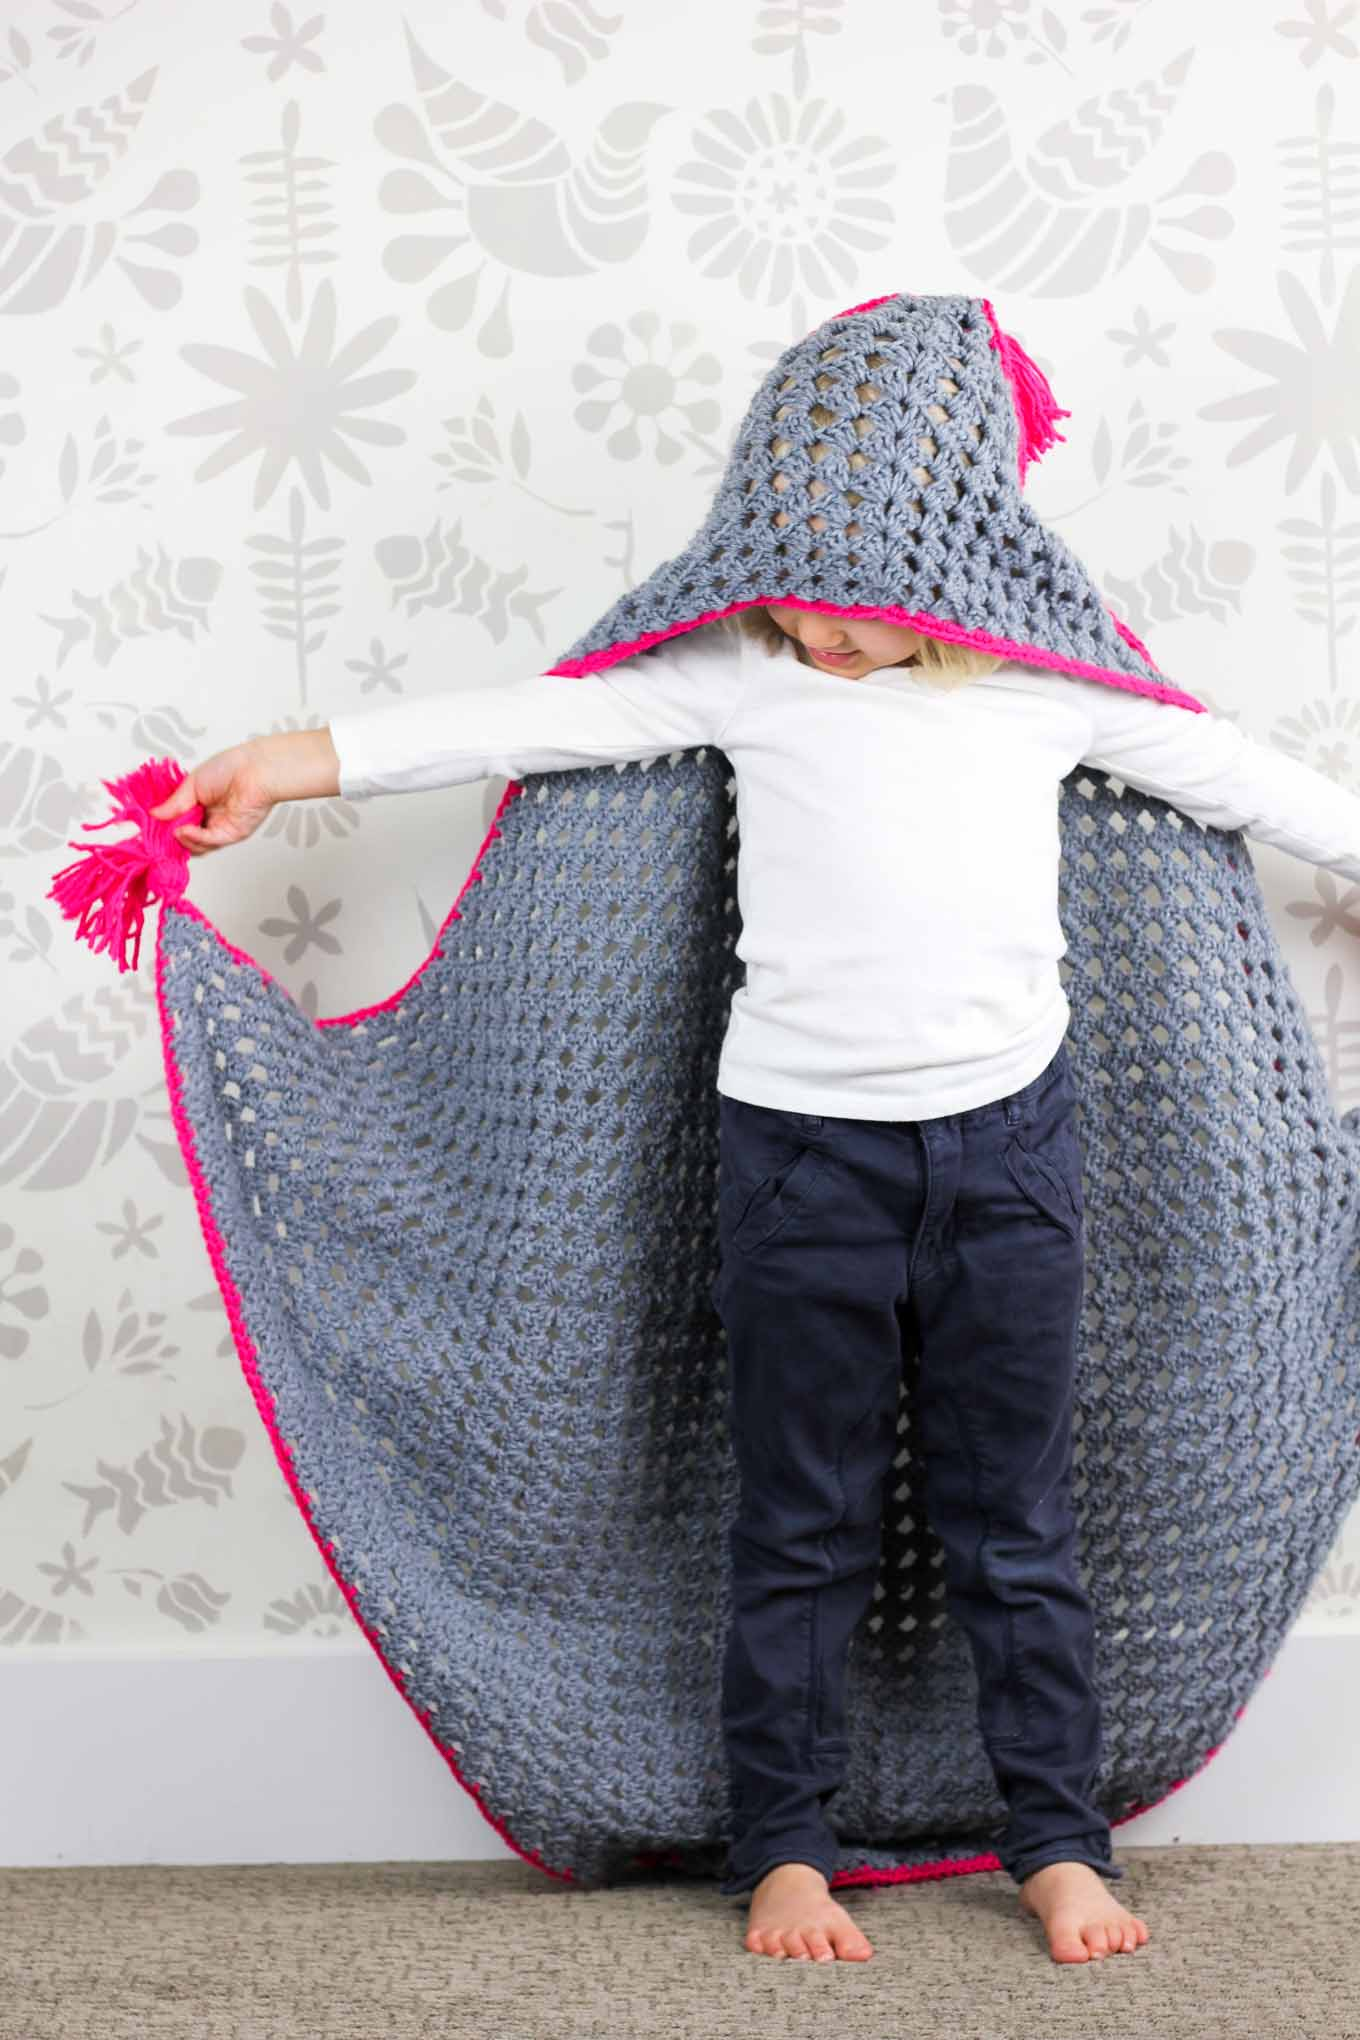 Free Crochet Baby Patterns For Blankets : Modern Crochet Hooded Baby Blanket - free pattern for charity